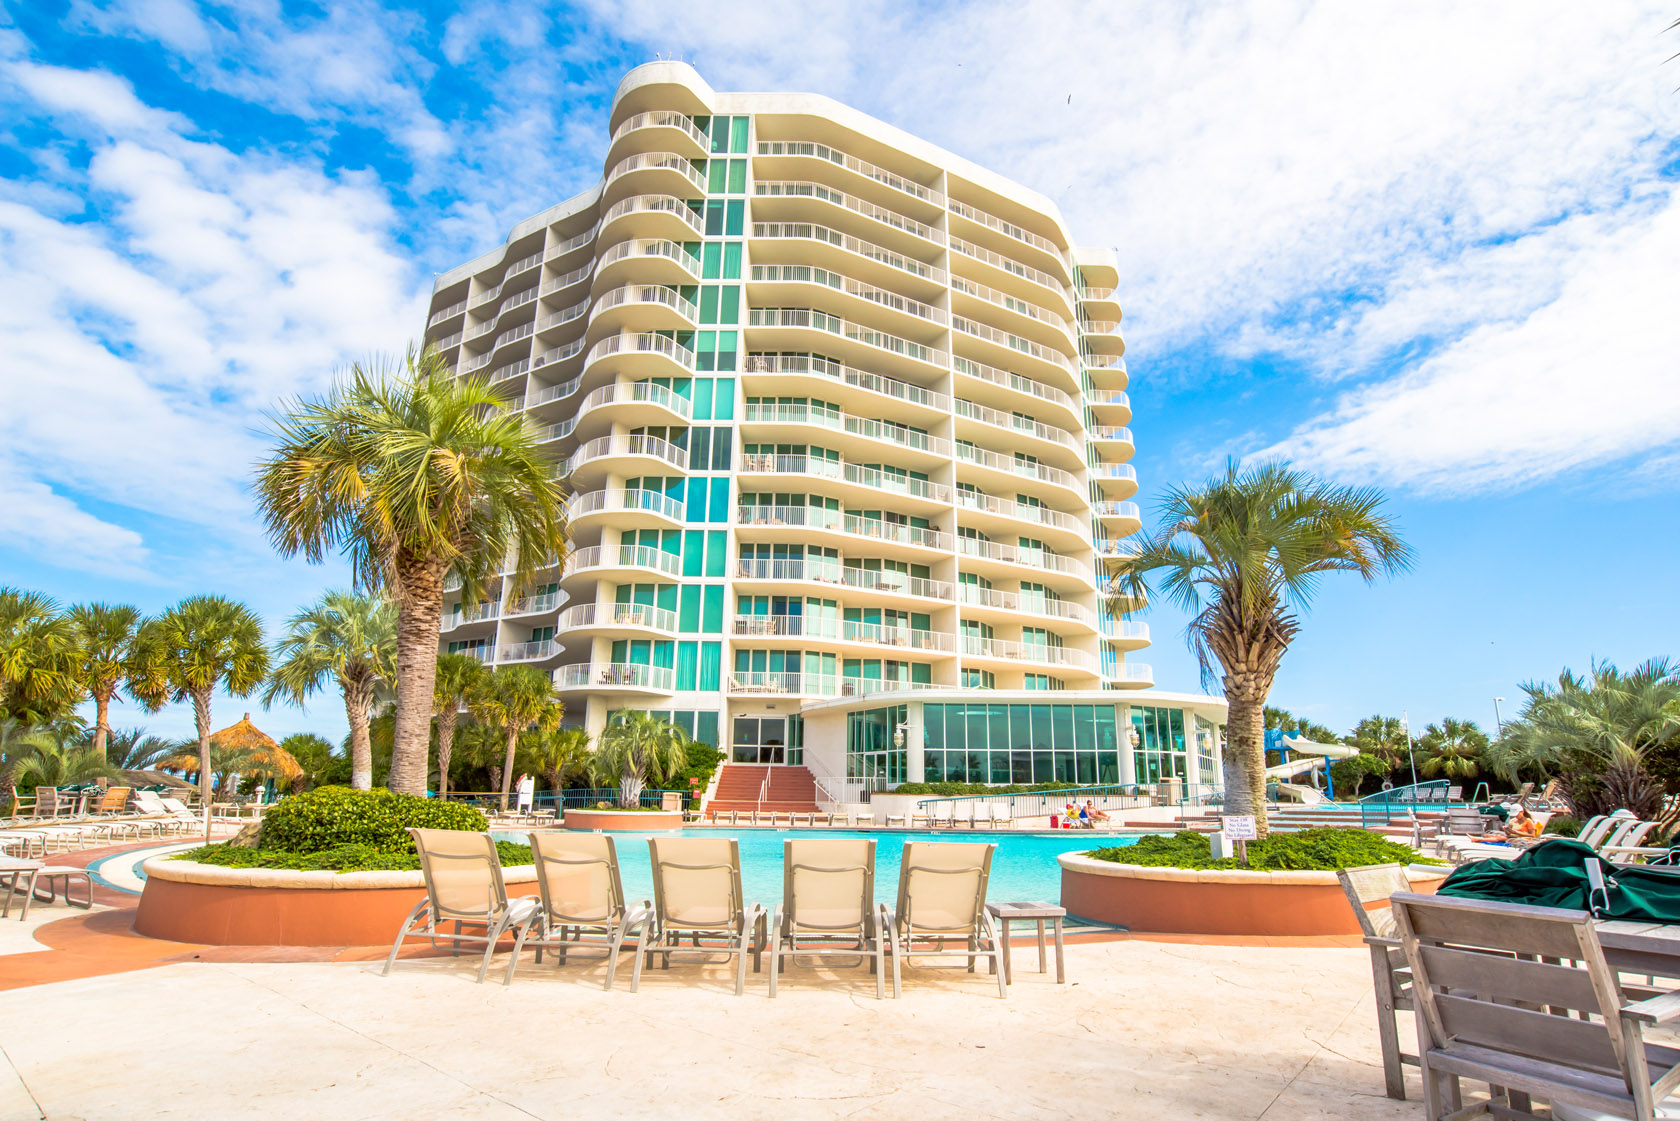 Penthouse View At Caribe Resort Orange Beach Jwre Powered By Jpar Coast County Mobile County Real Estate Baldwin County Real Estate Alabama Gulf Coast Condos